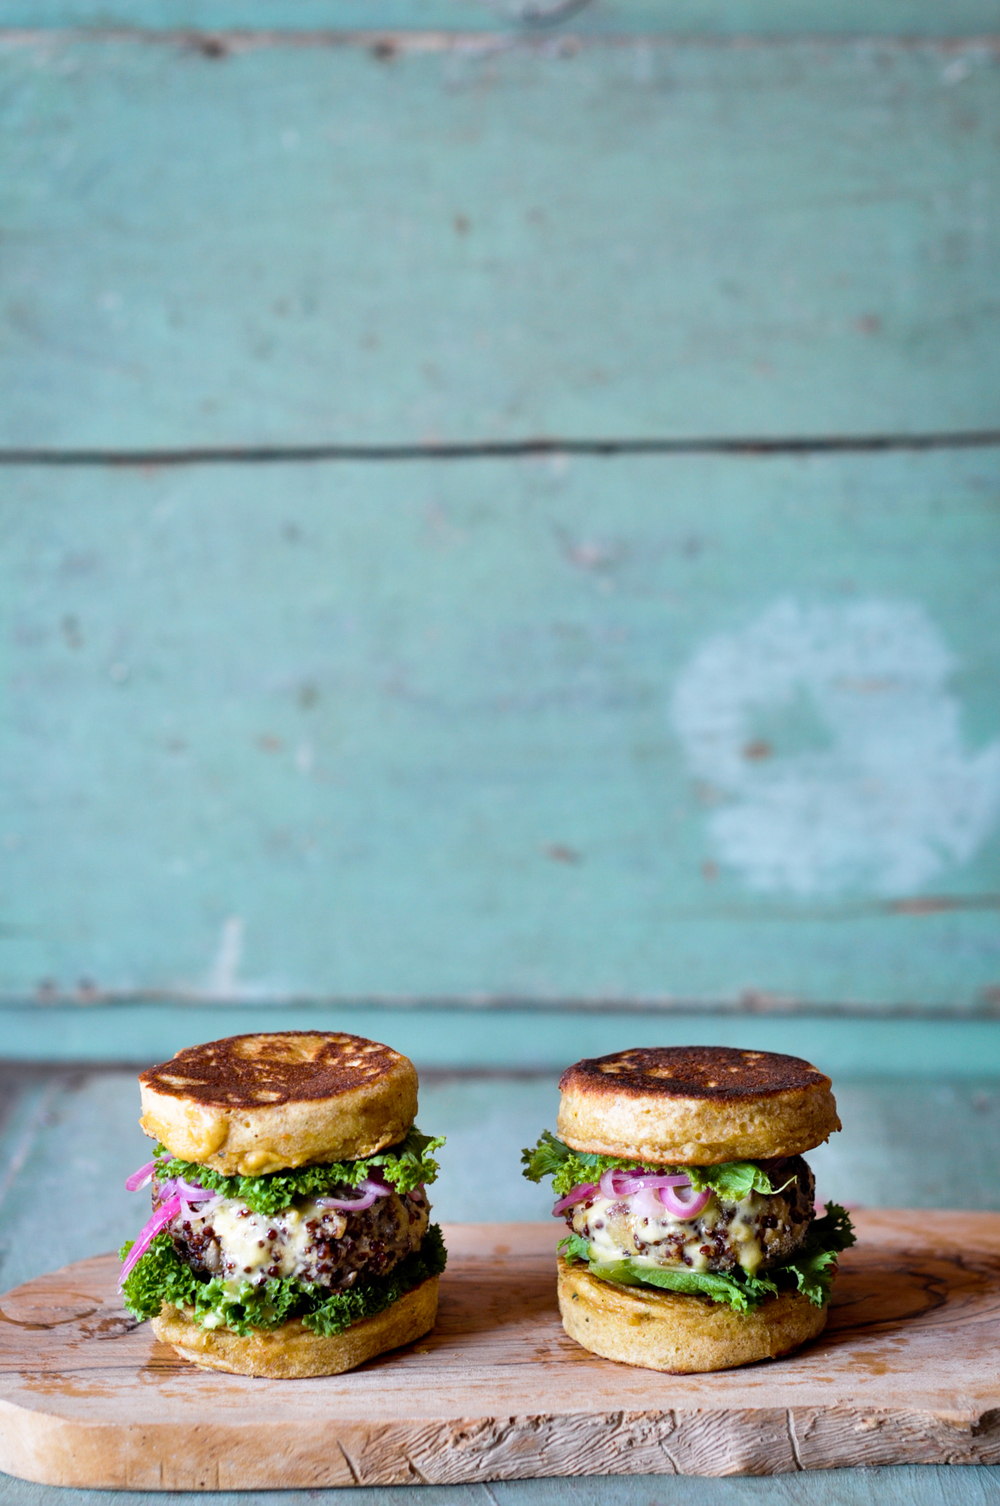 Quinoa Burgers sandwiched in Chickpea Buns